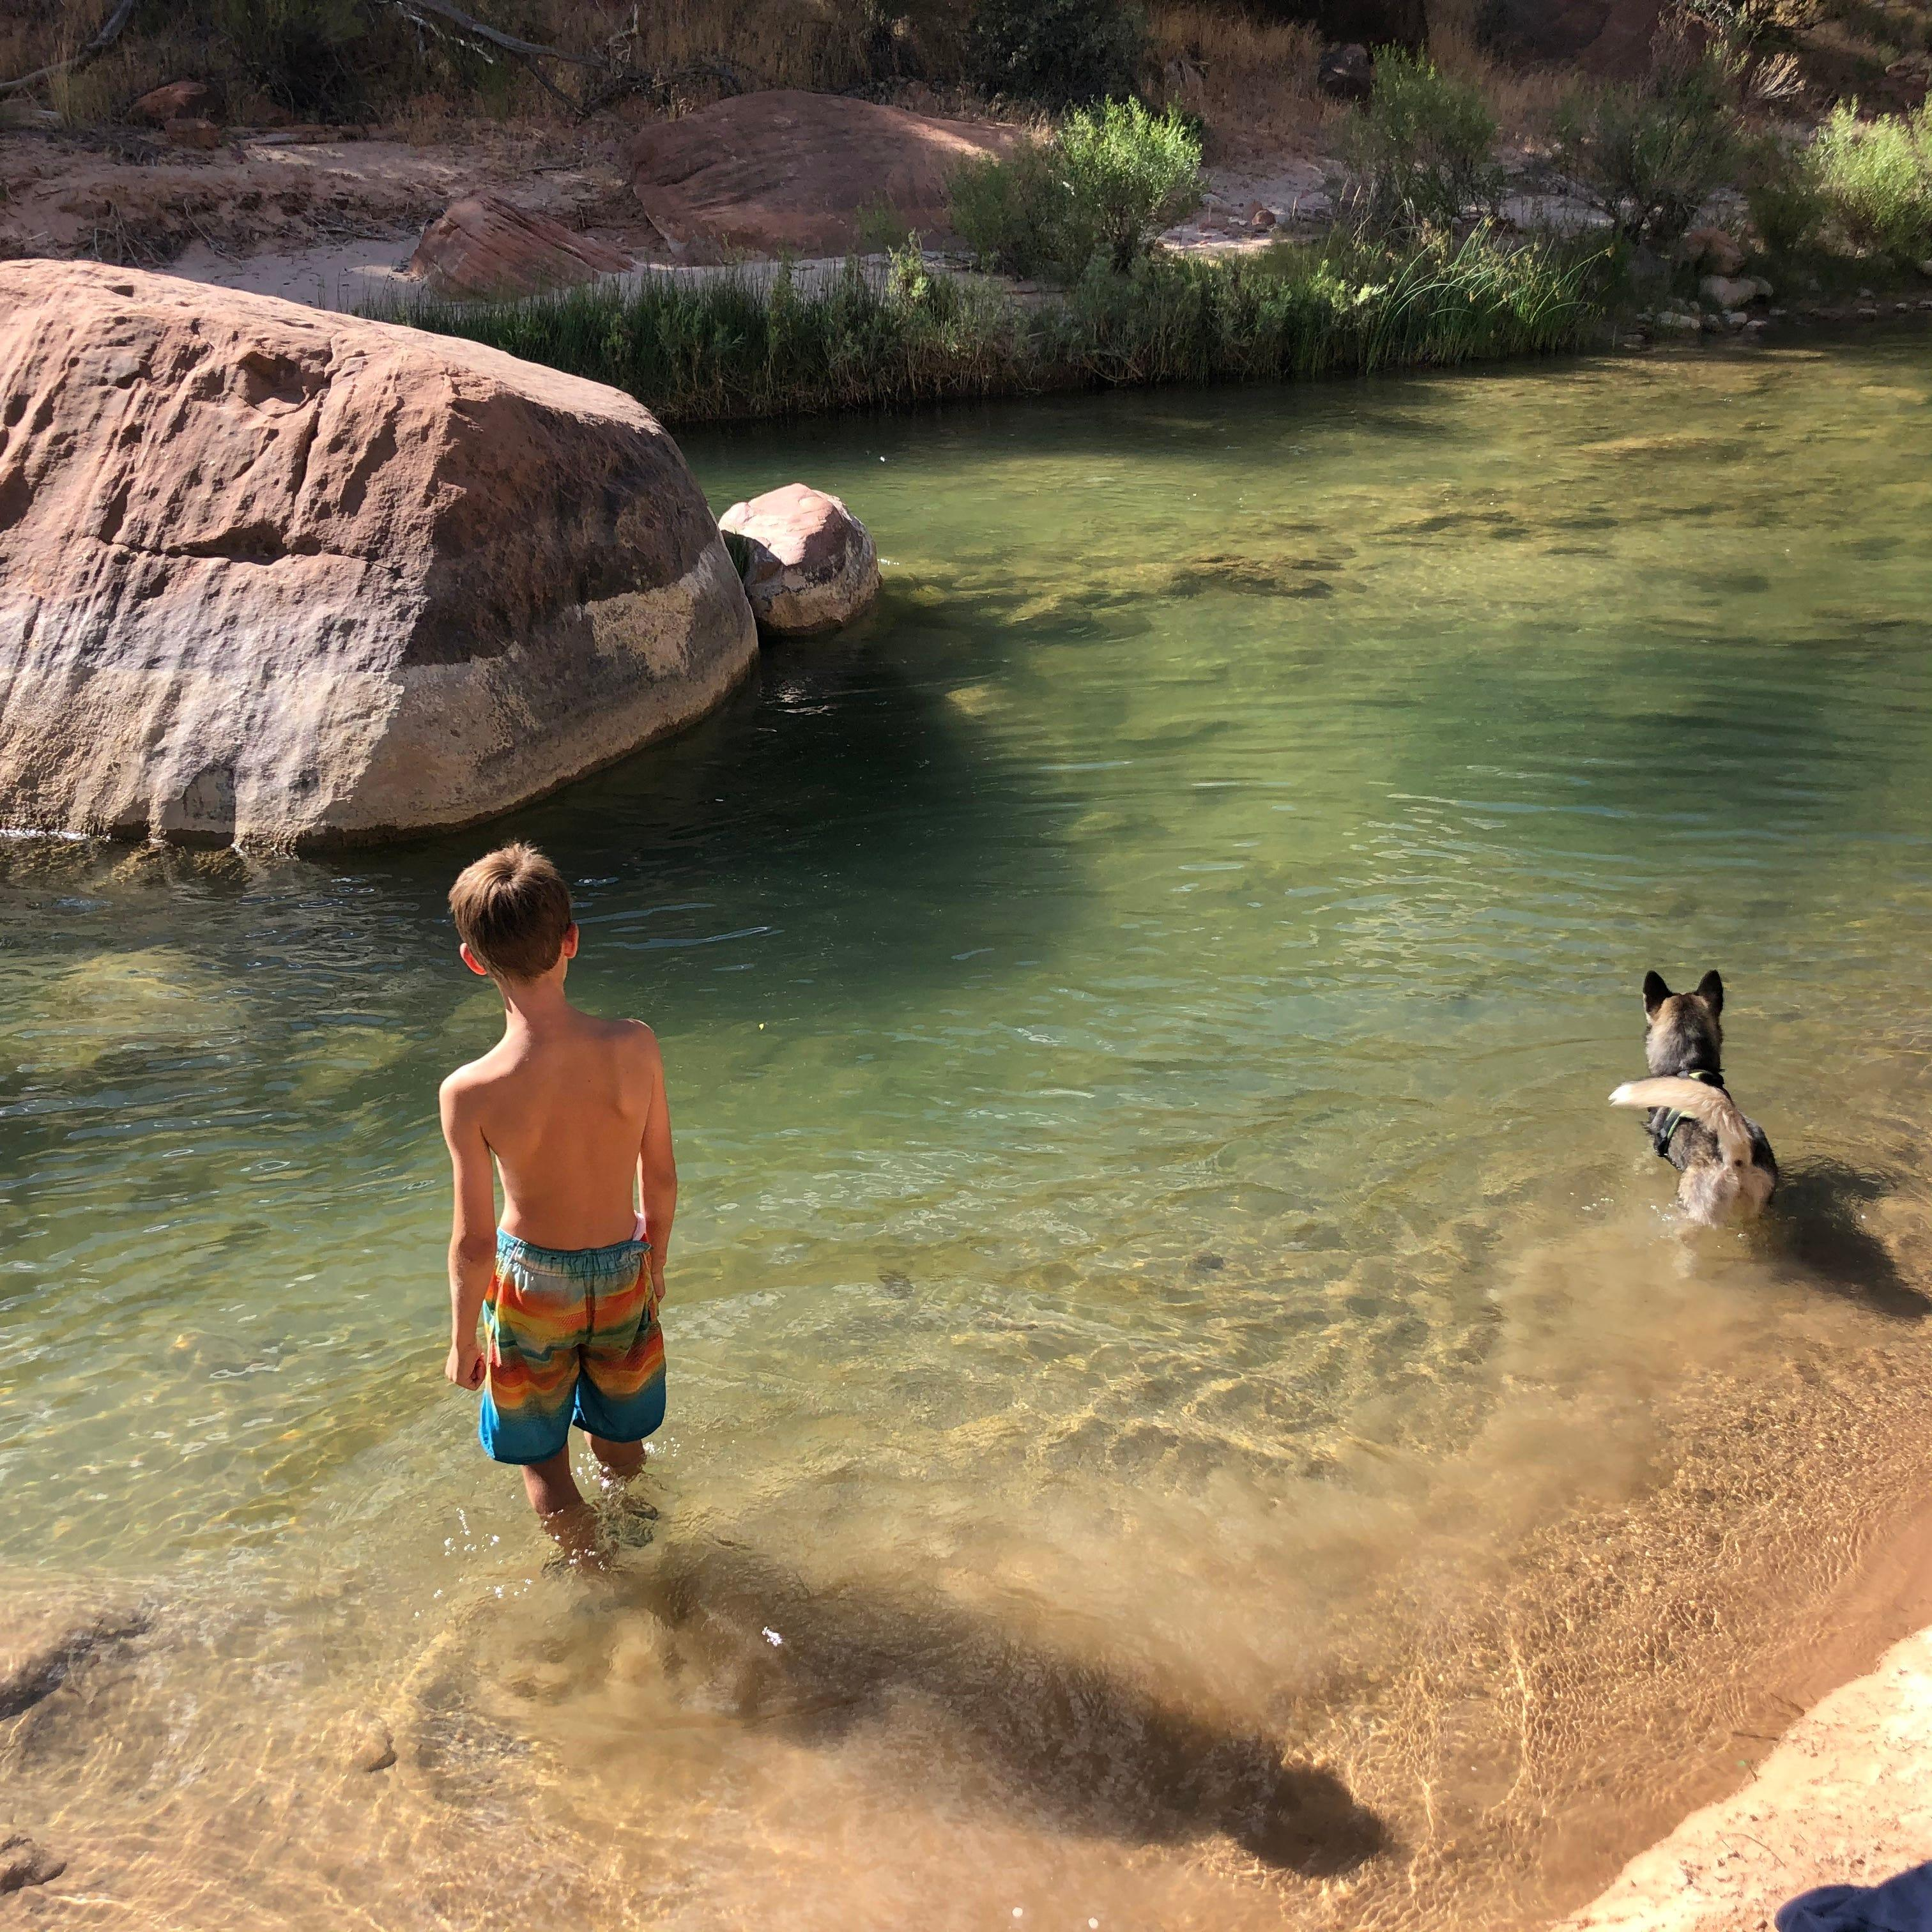 Puppy dies at Zion National Park in toxic algae bloom that is dangerous to humans, animals